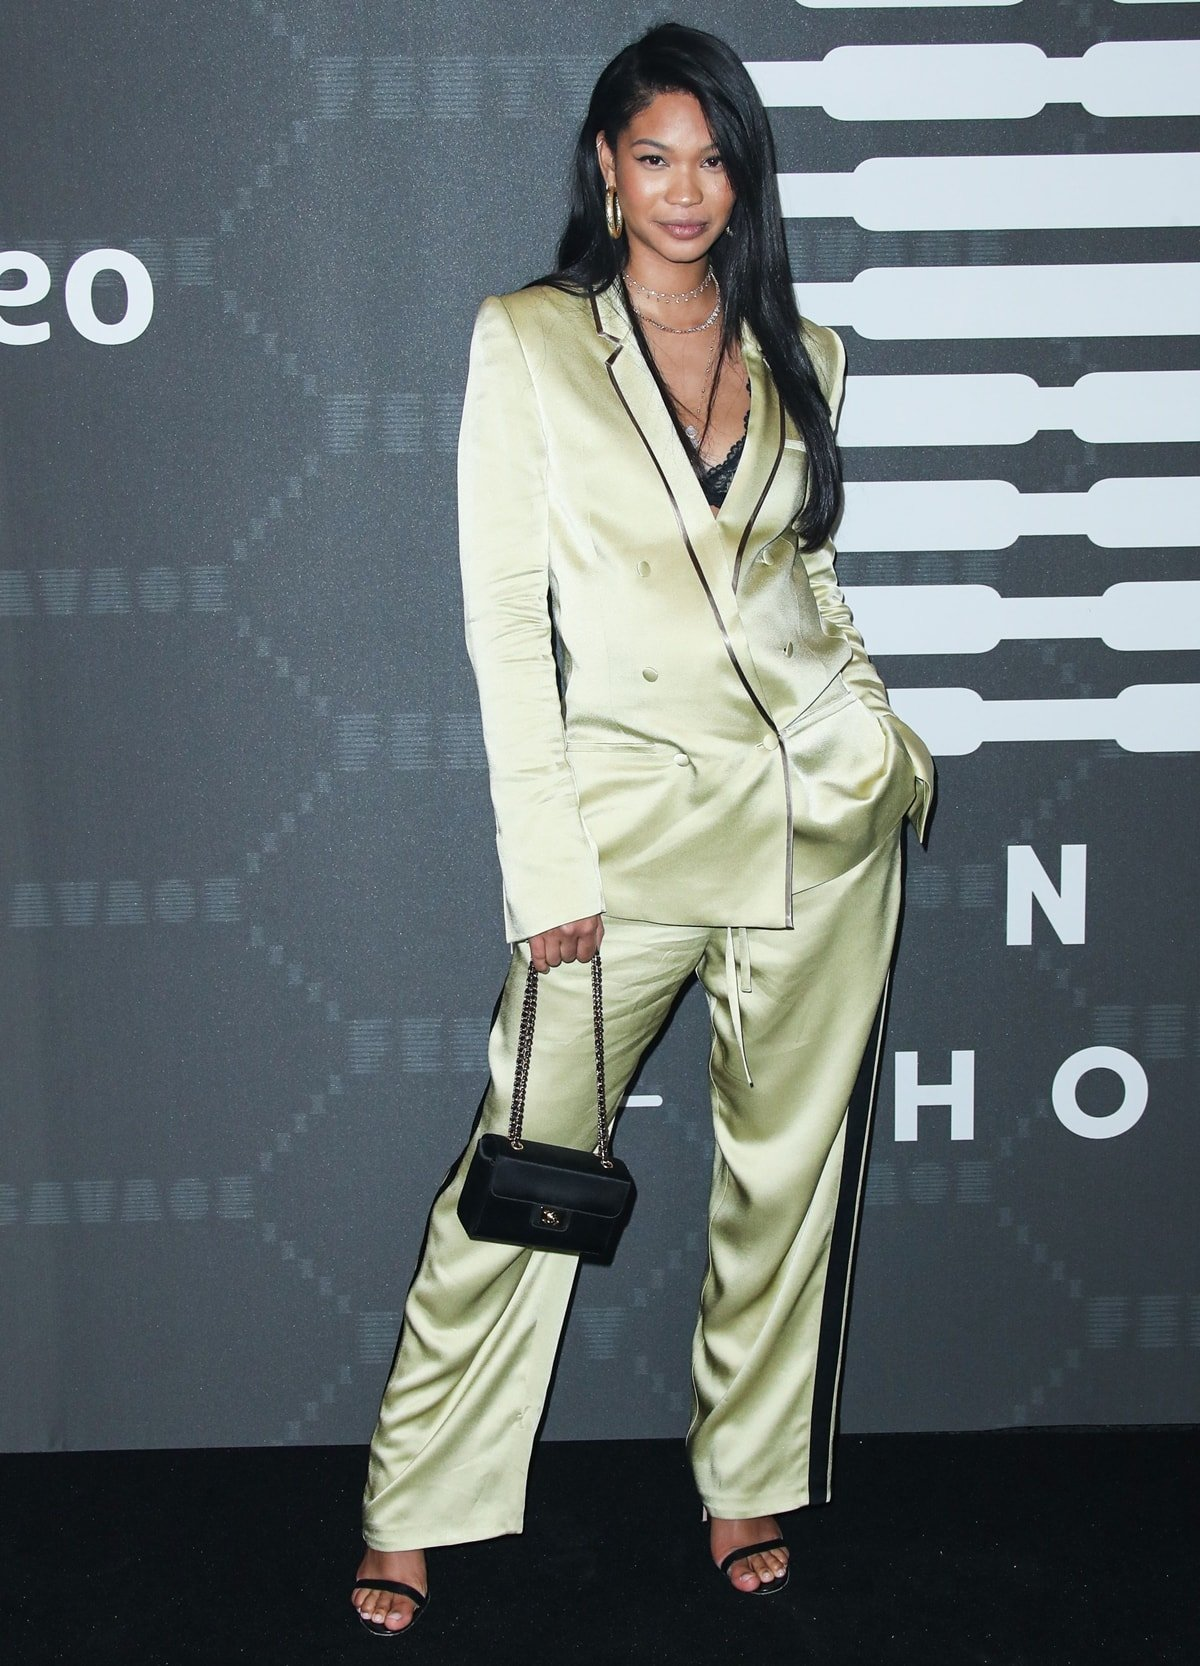 Chanel Iman wears a yellow-green pajama set and totes a Chanel bag at the Savage X Fenty Show